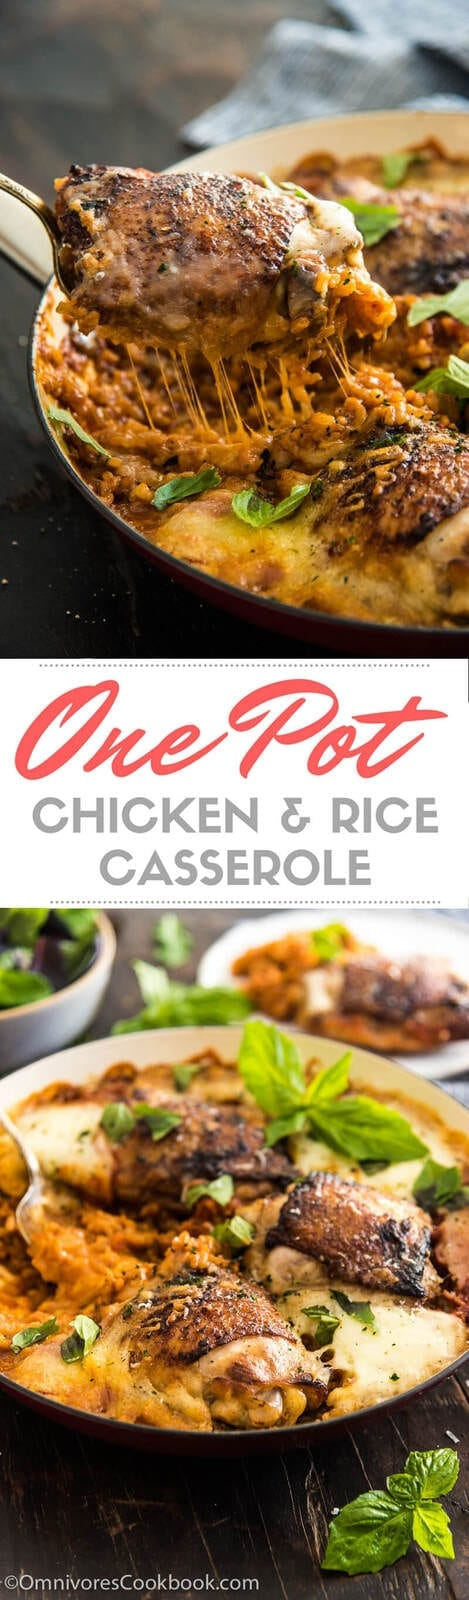 One Pot Chicken and Rice Casserole + Giveaway